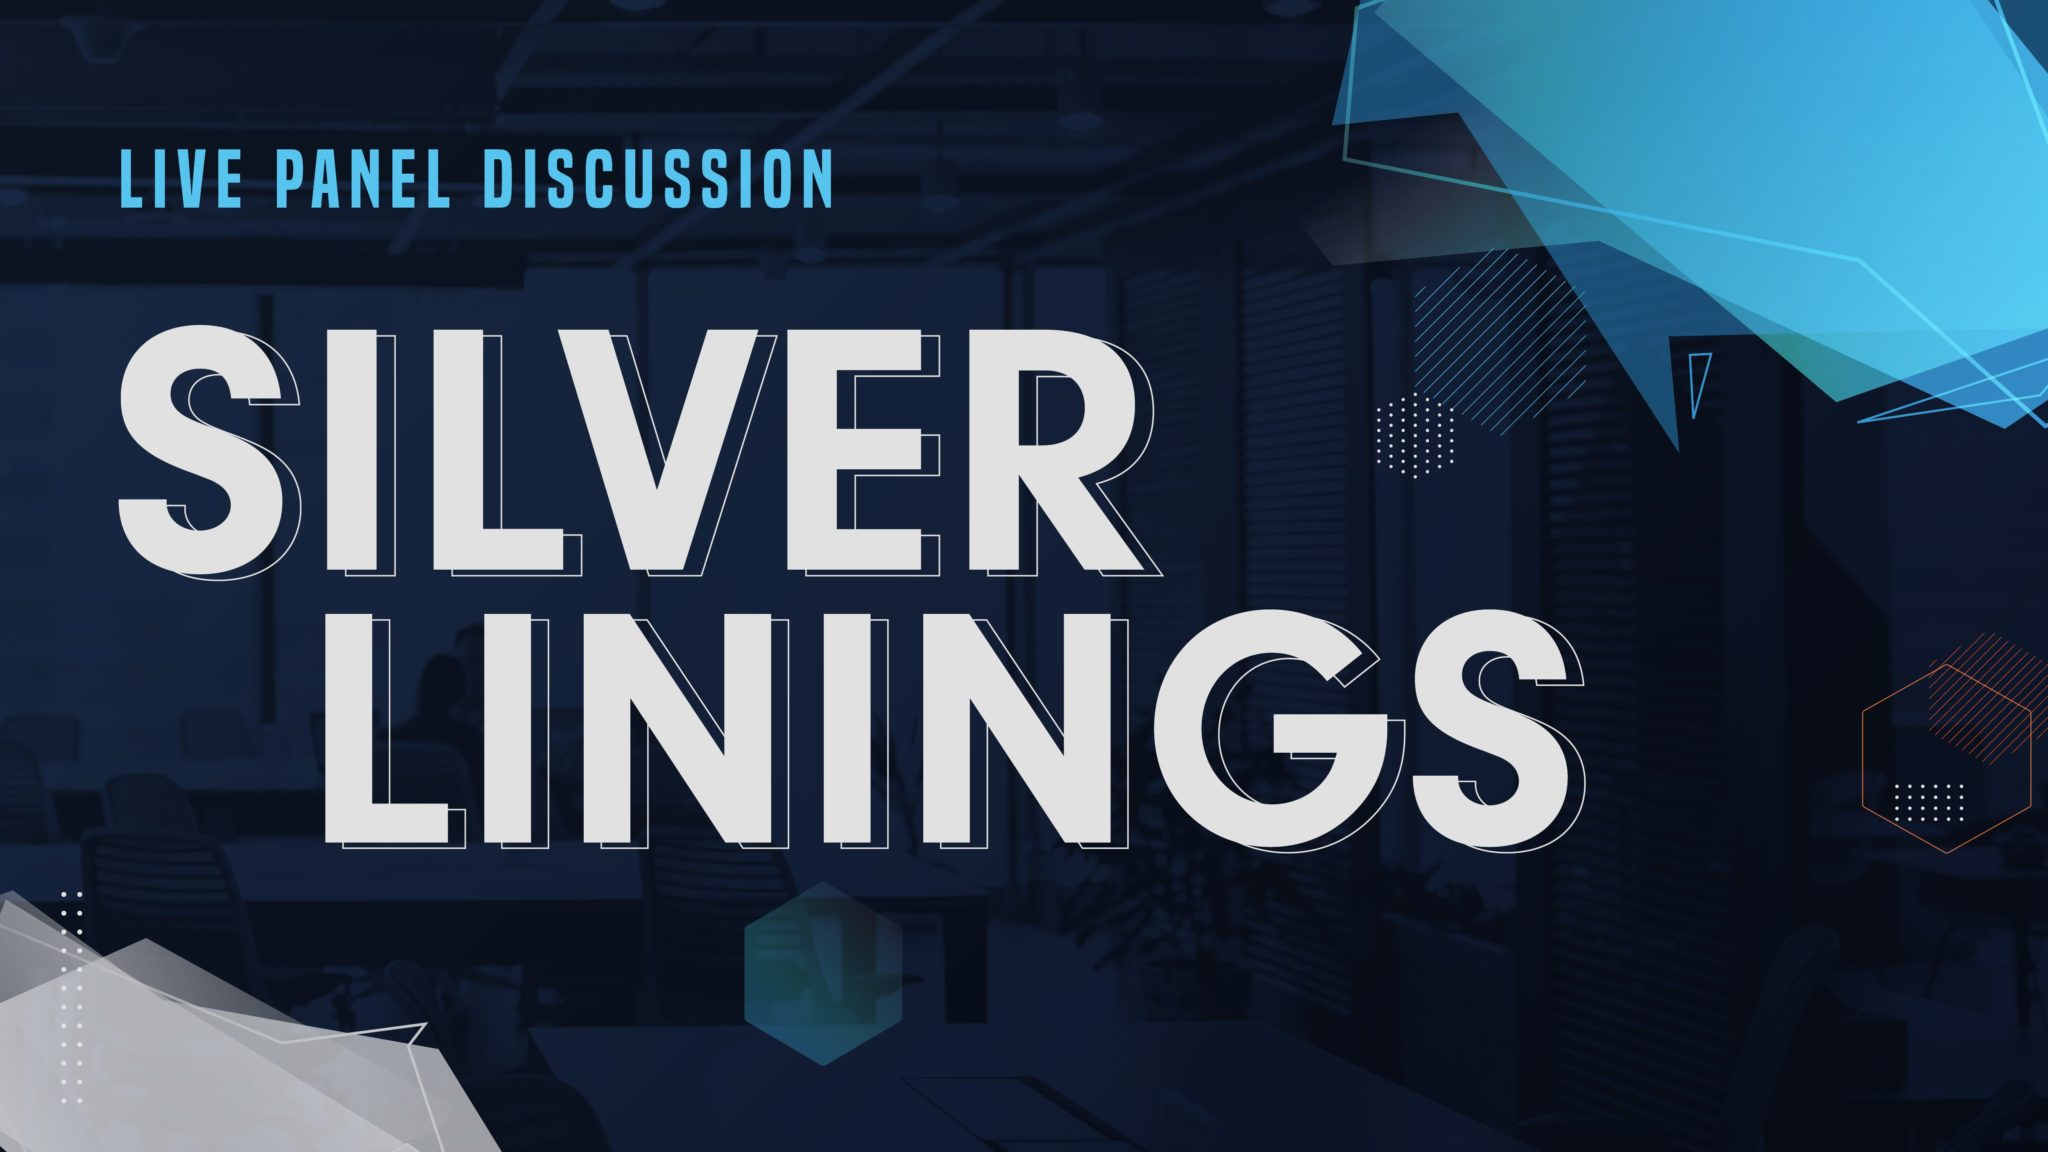 "Edge ""Silver Linings"" Webinar Provides Reasons for Optimism in 2020 and Beyond"